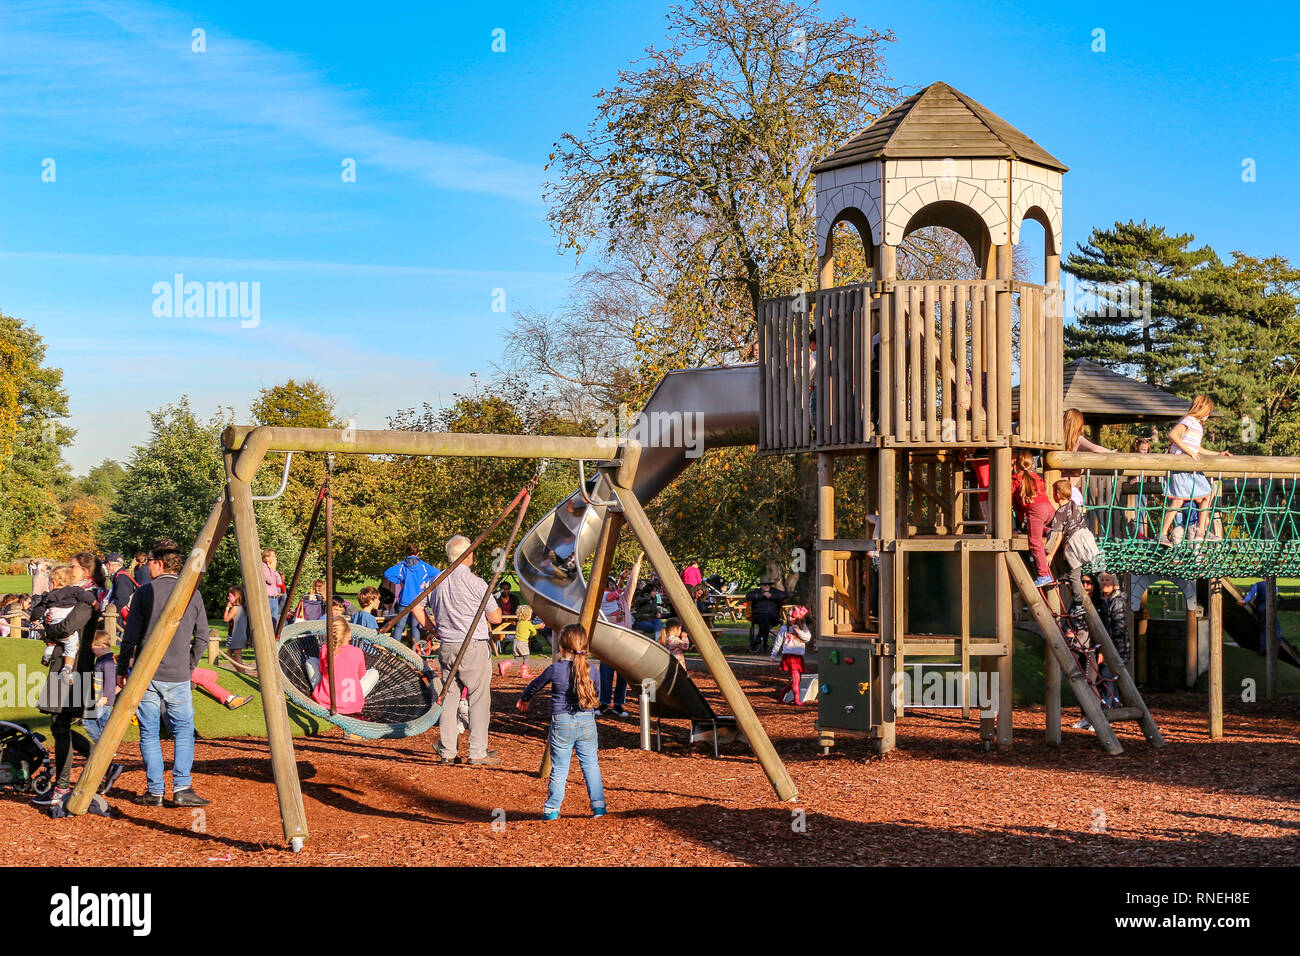 LONDON - OCT 25, 2017: Colorful playground on yard in the park where children have fun with there parents - Stock Image